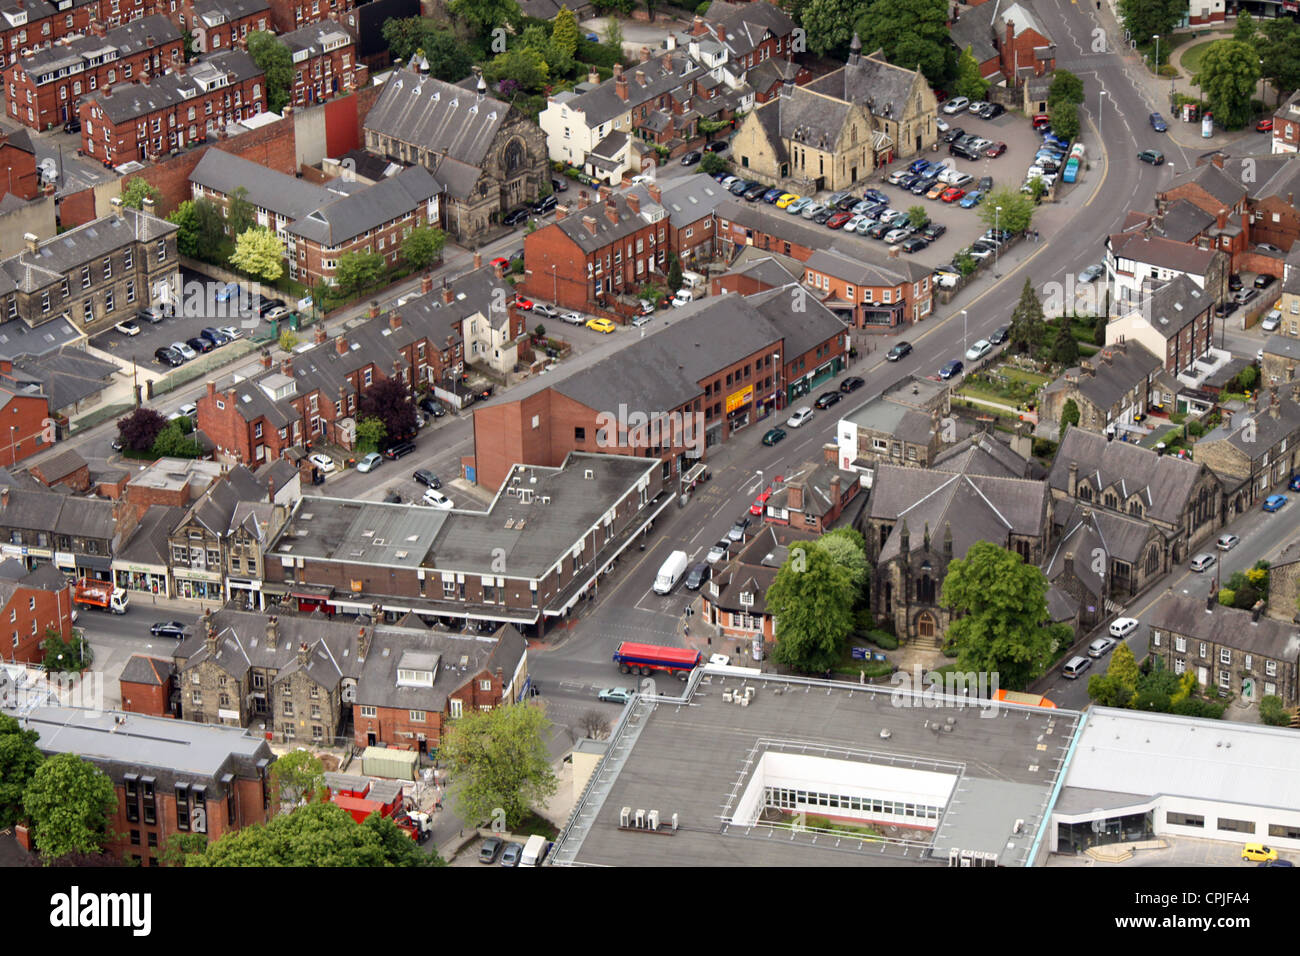 aerial view of small shops in Headingley, where North Lane meets the Otley Road - Stock Image